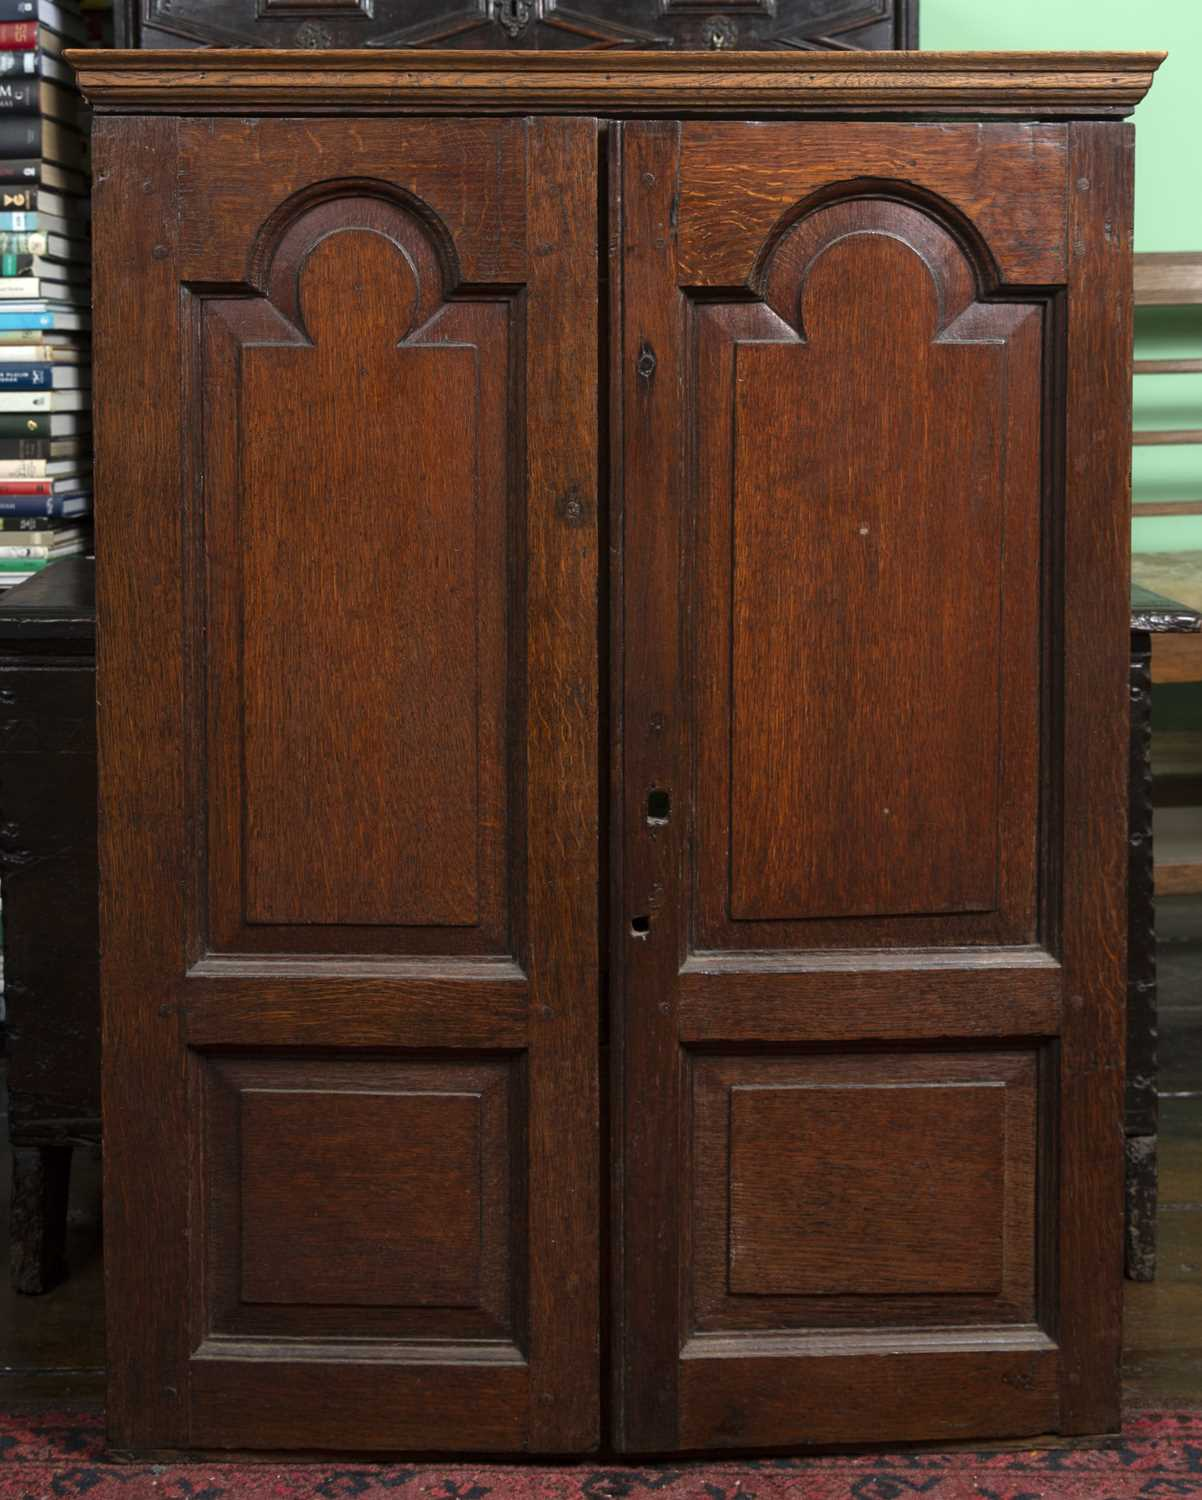 An 18th century oak small cupboard, having a pair of arch panelled doors enclosing shelves and